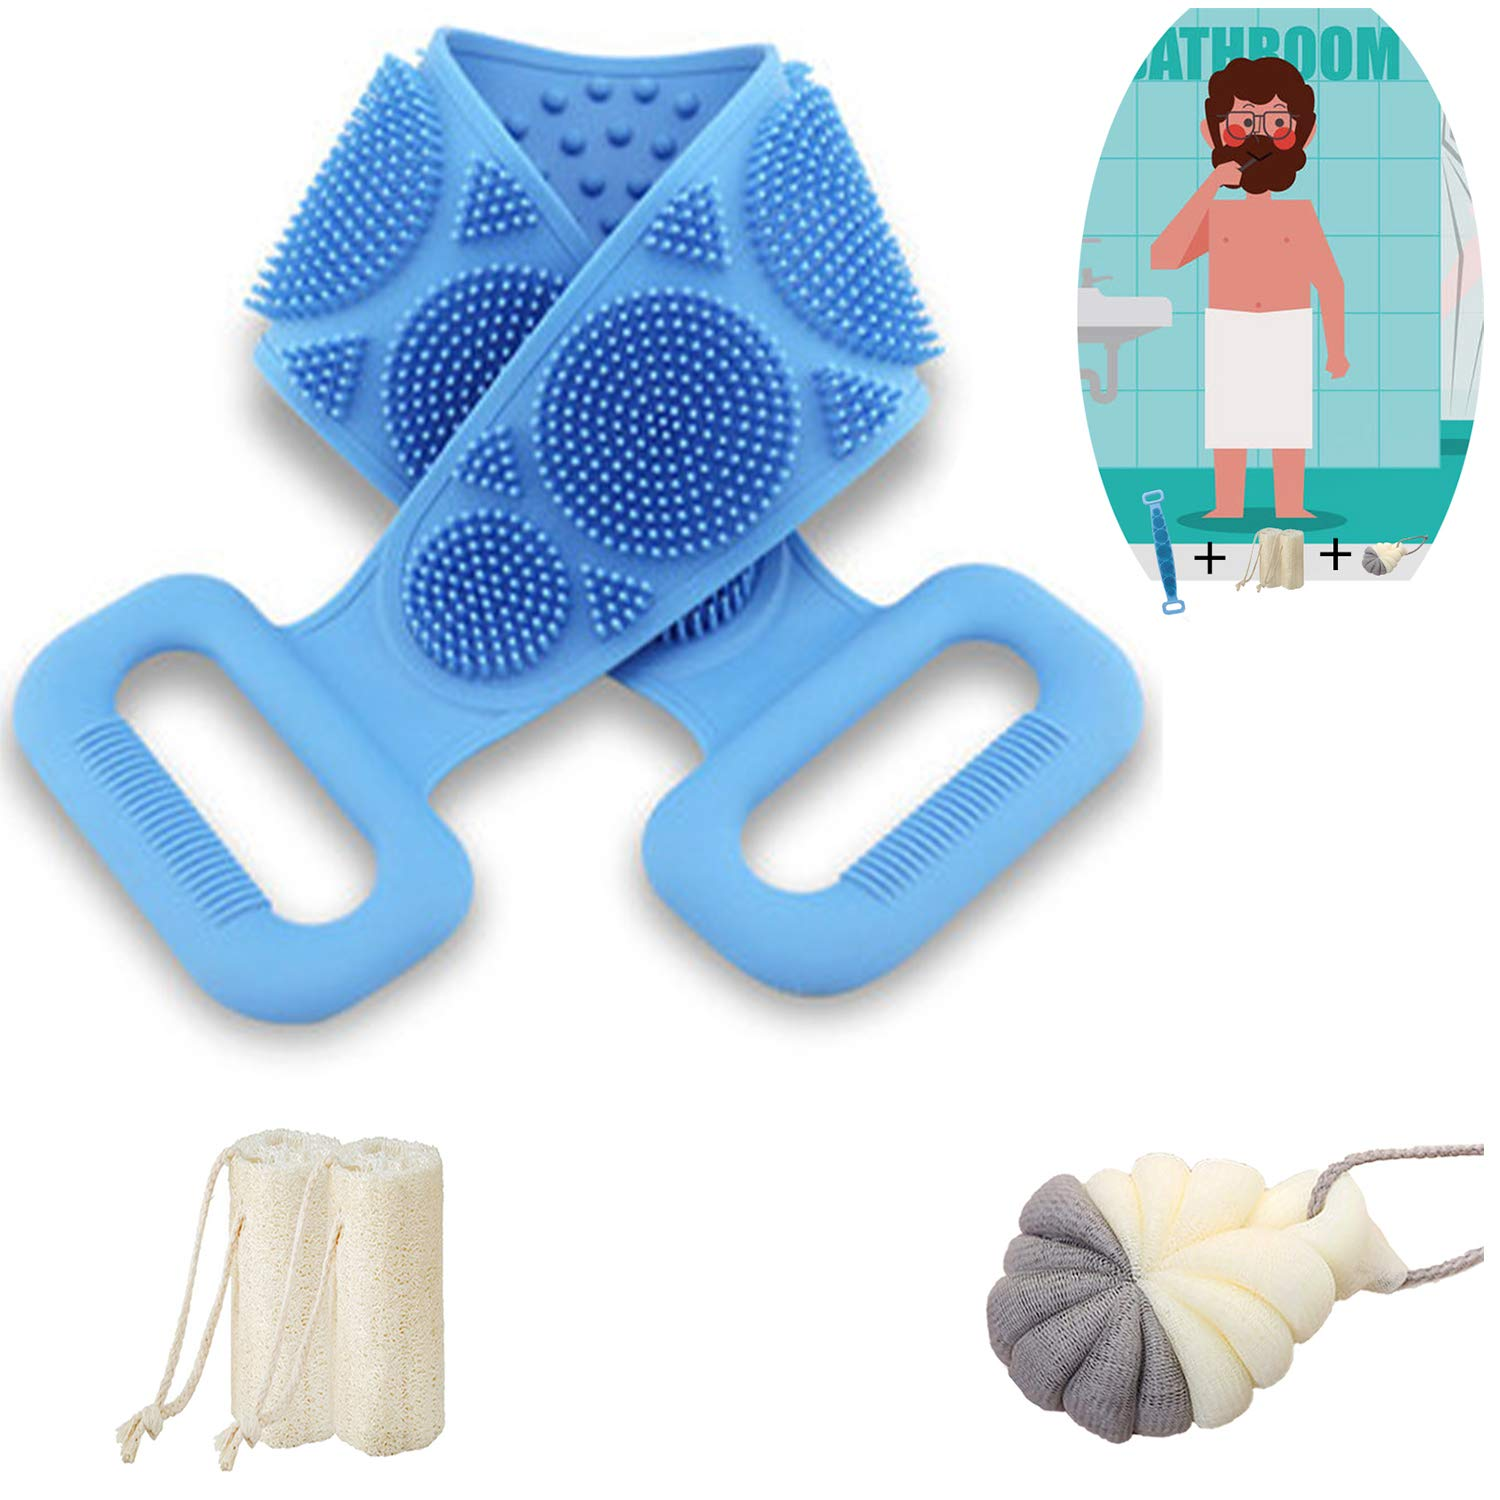 ZGDHHZDX Silicone Loofash, Family Pack Exfoliation Sponge Body Scrubbers for Use in Shower, Reusable Soft Bristles Back Scrubber with Long Handle Silicone Body Brush Deep Clean for Women Man (Blue)